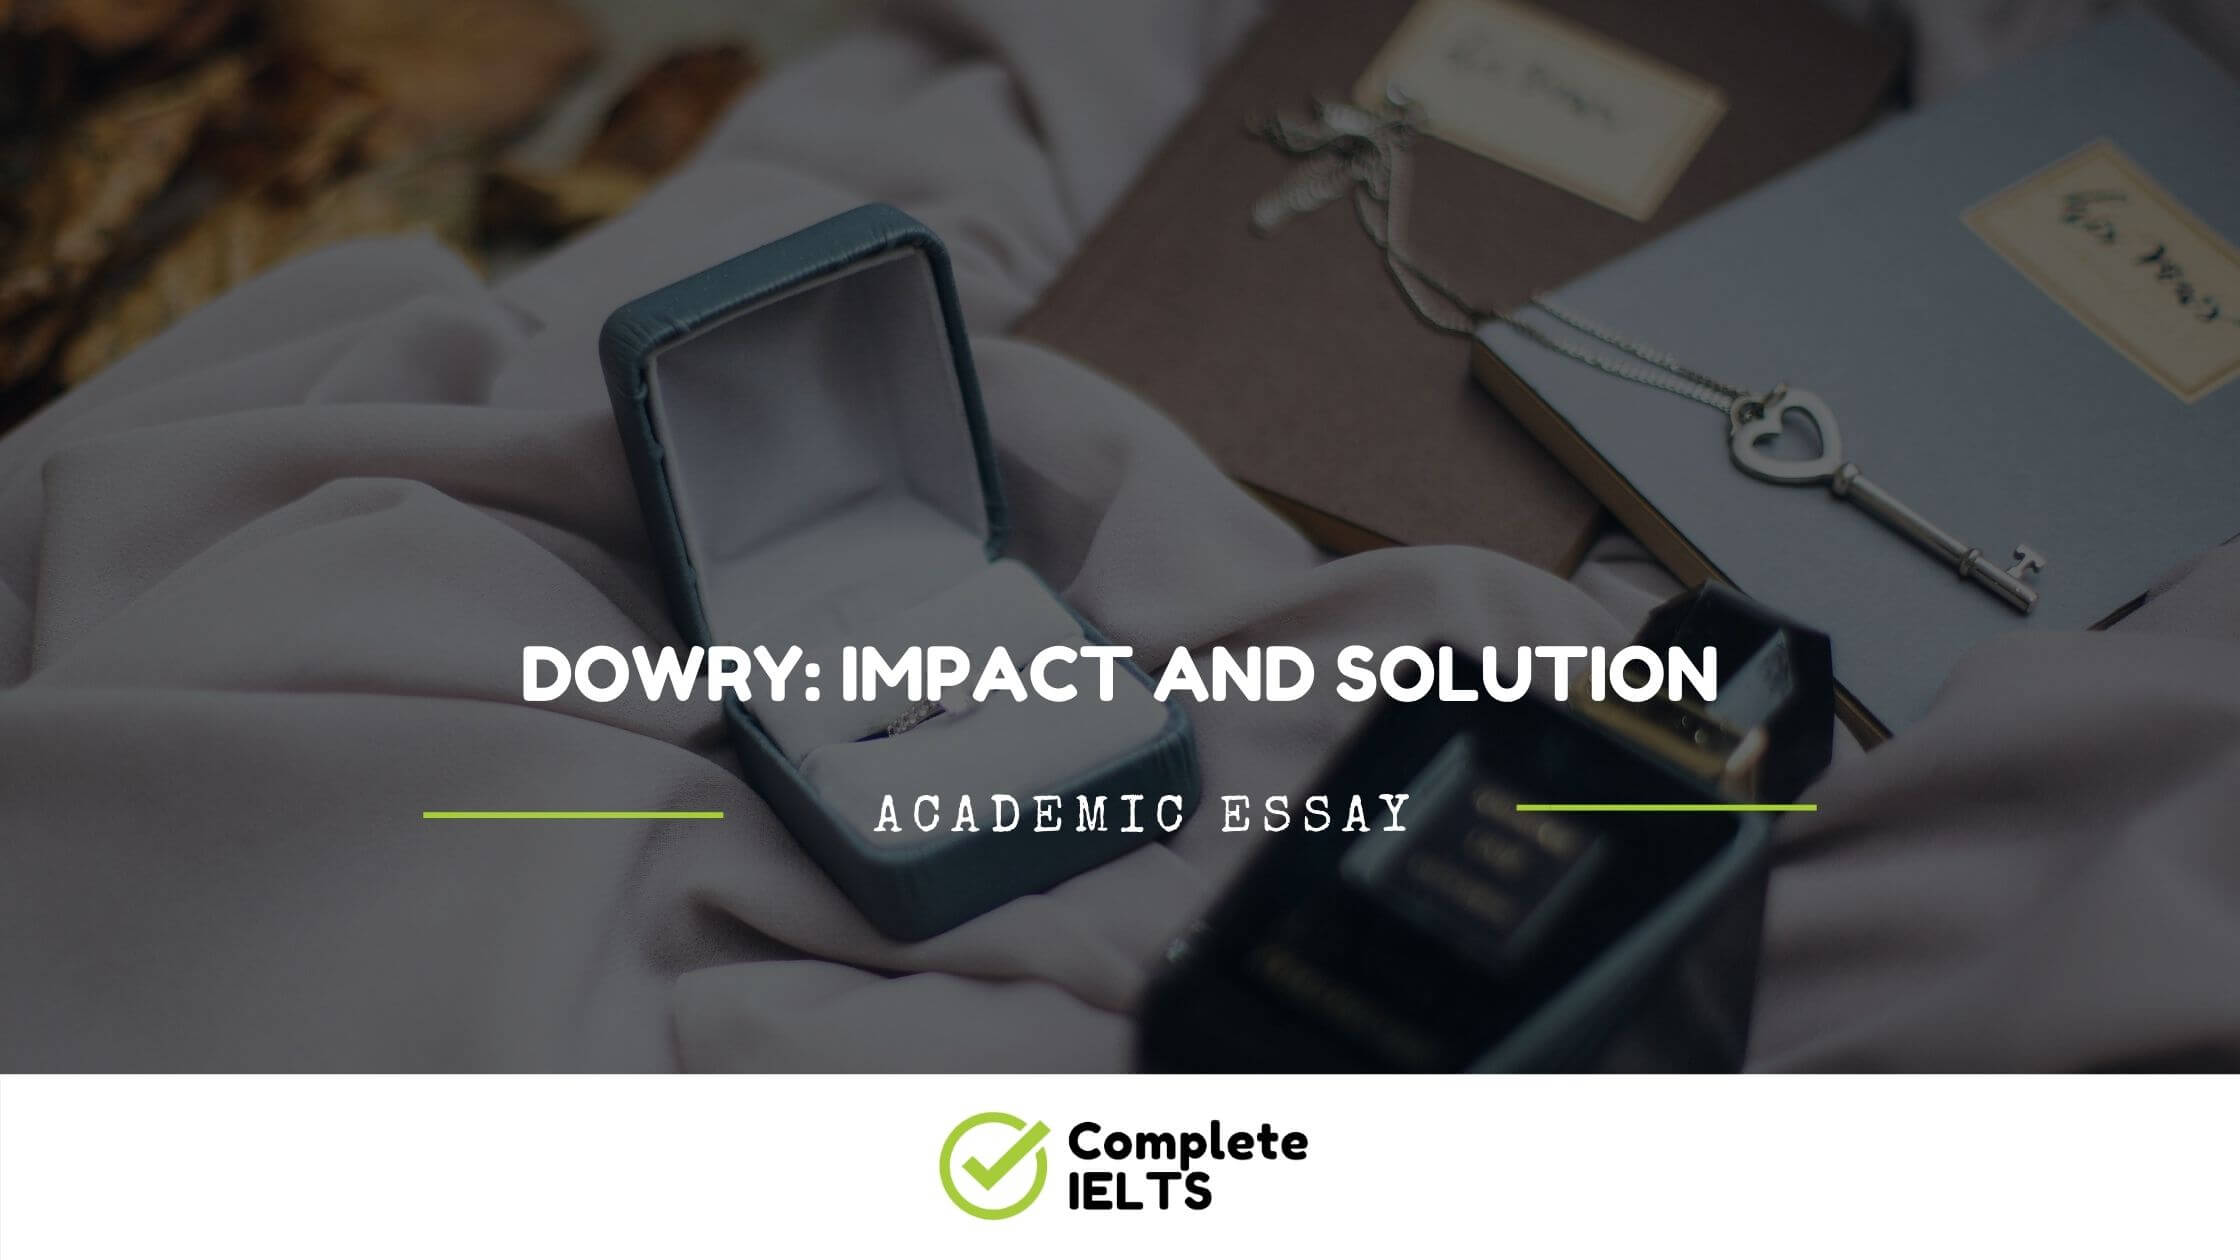 Essay on Dowry: Impact And Solution